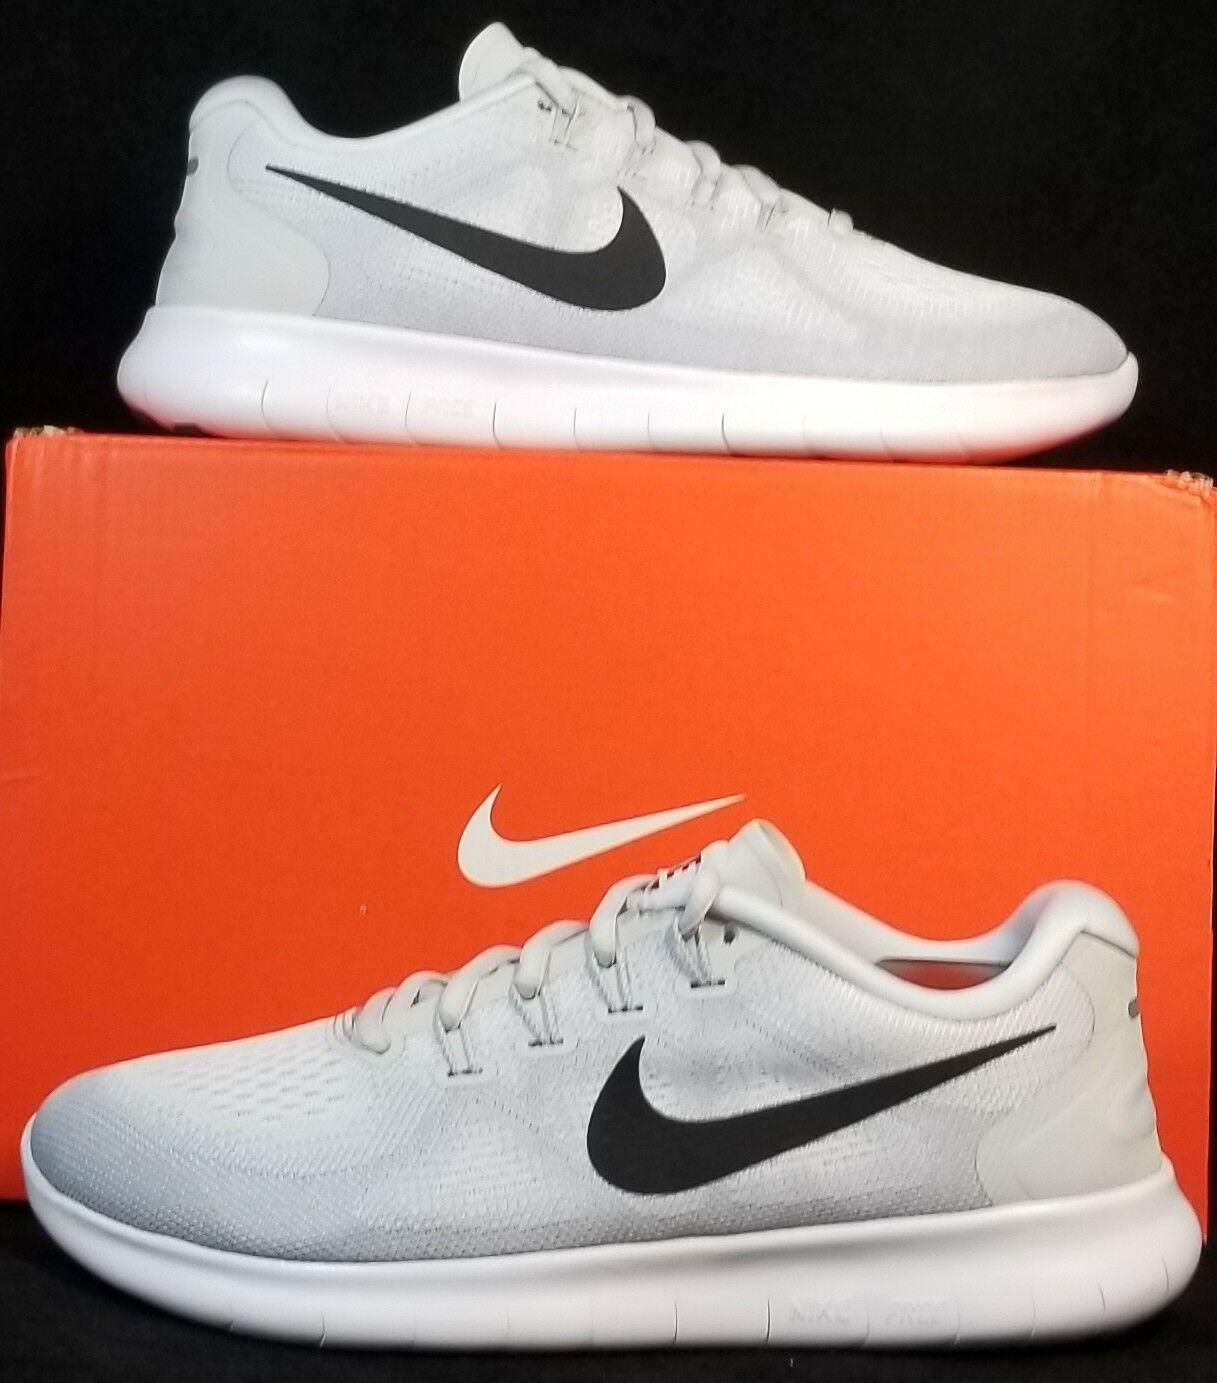 NIB NIKE WOMENS FREE RN 2017 880840 101 PURE PLATINUM RUNNING CASUAL SHOES Price reduction New shoes for men and women, limited time discount